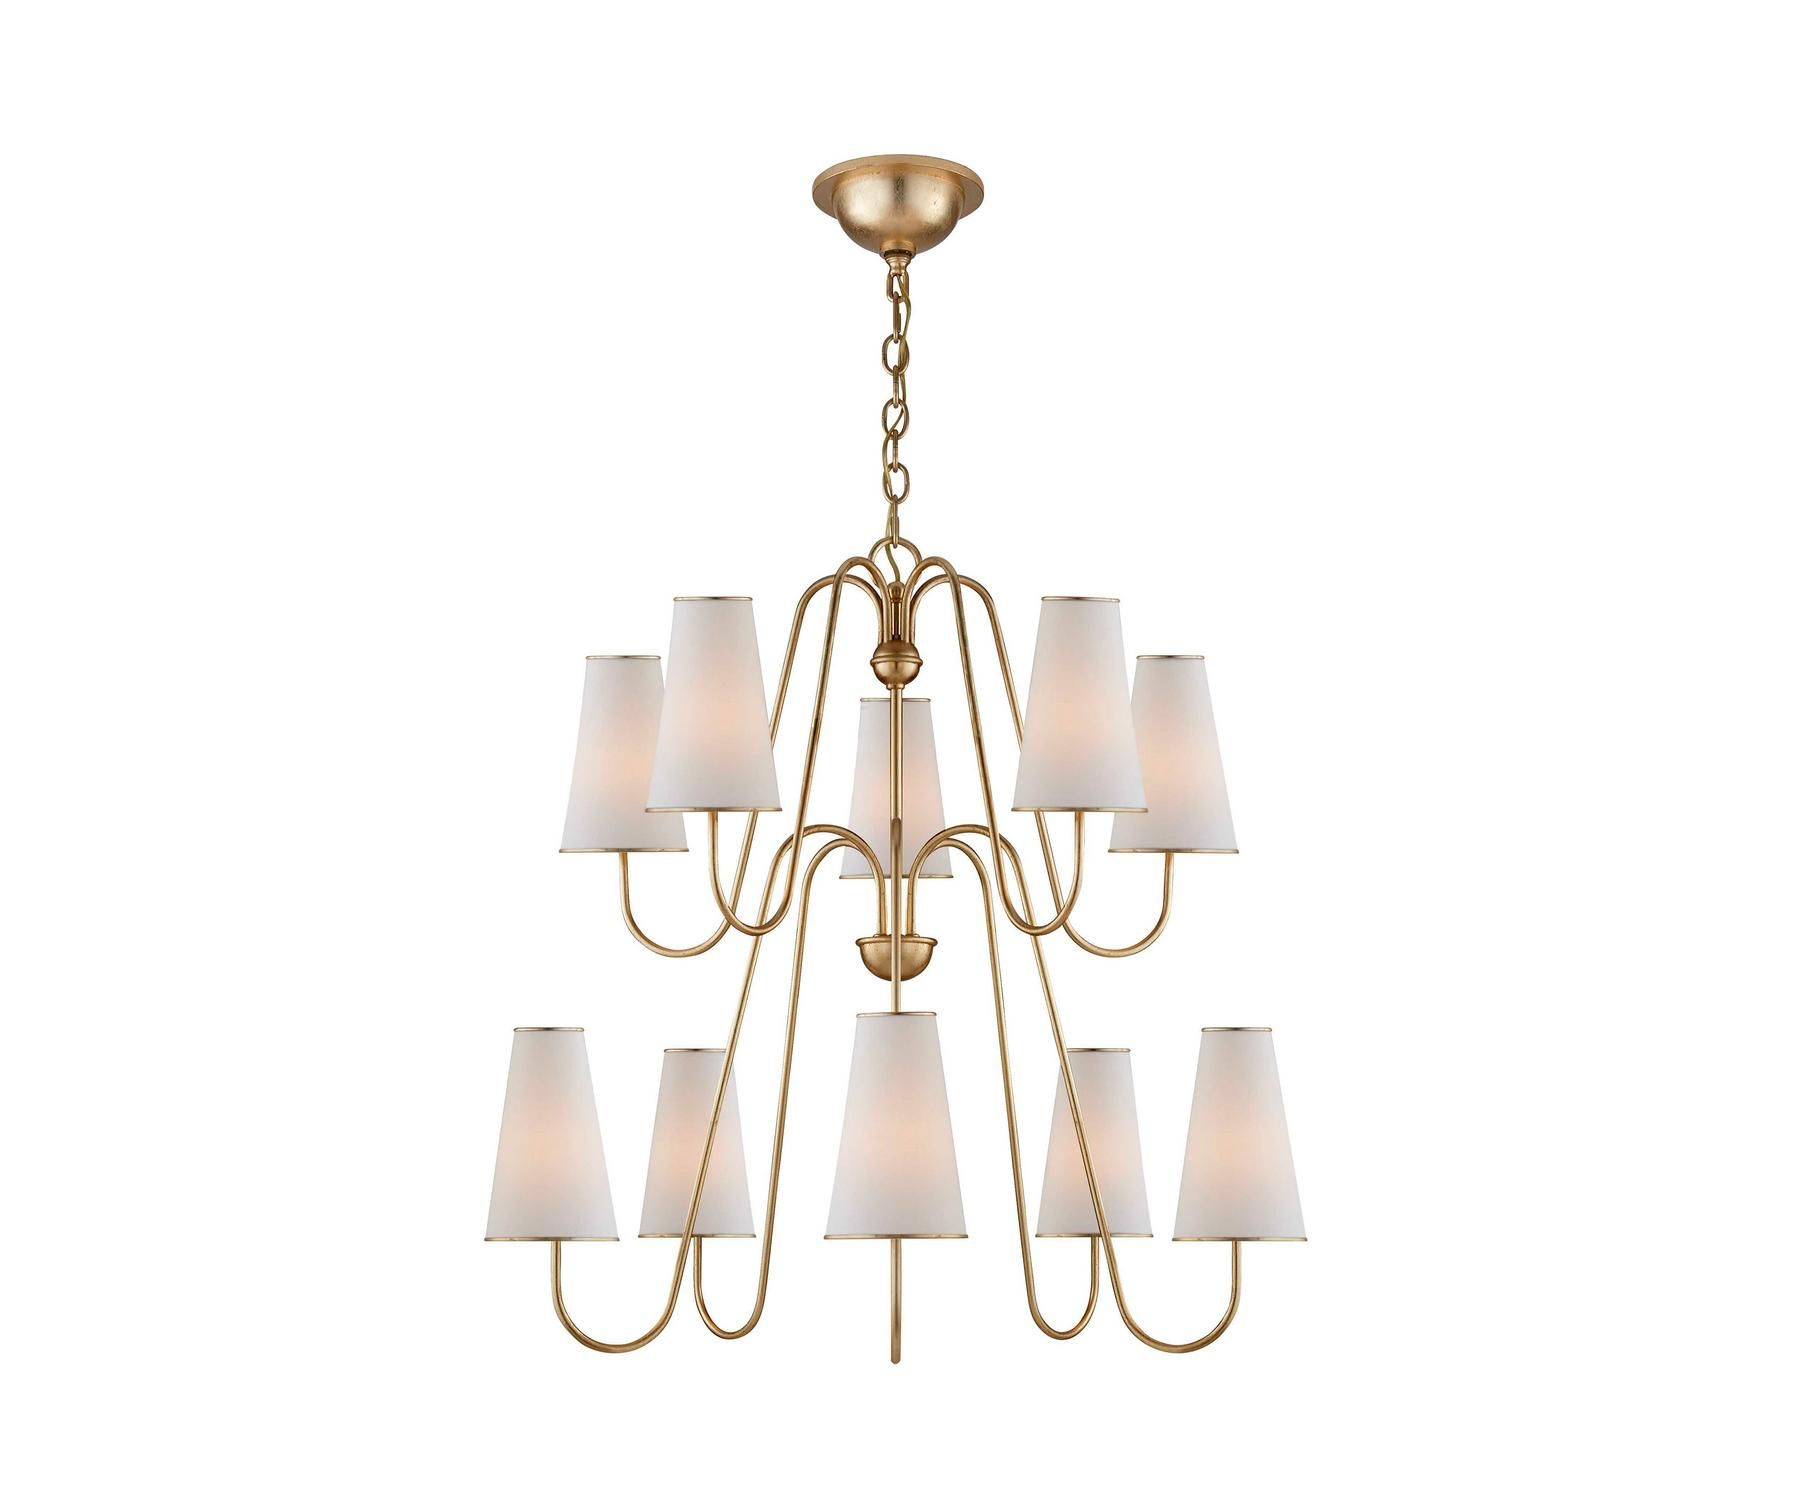 Montreuil chandelier aerin home beautiful pinterest english country home and antiques chandeliers and pendants bridgehampton ny 11932 arubaitofo Gallery